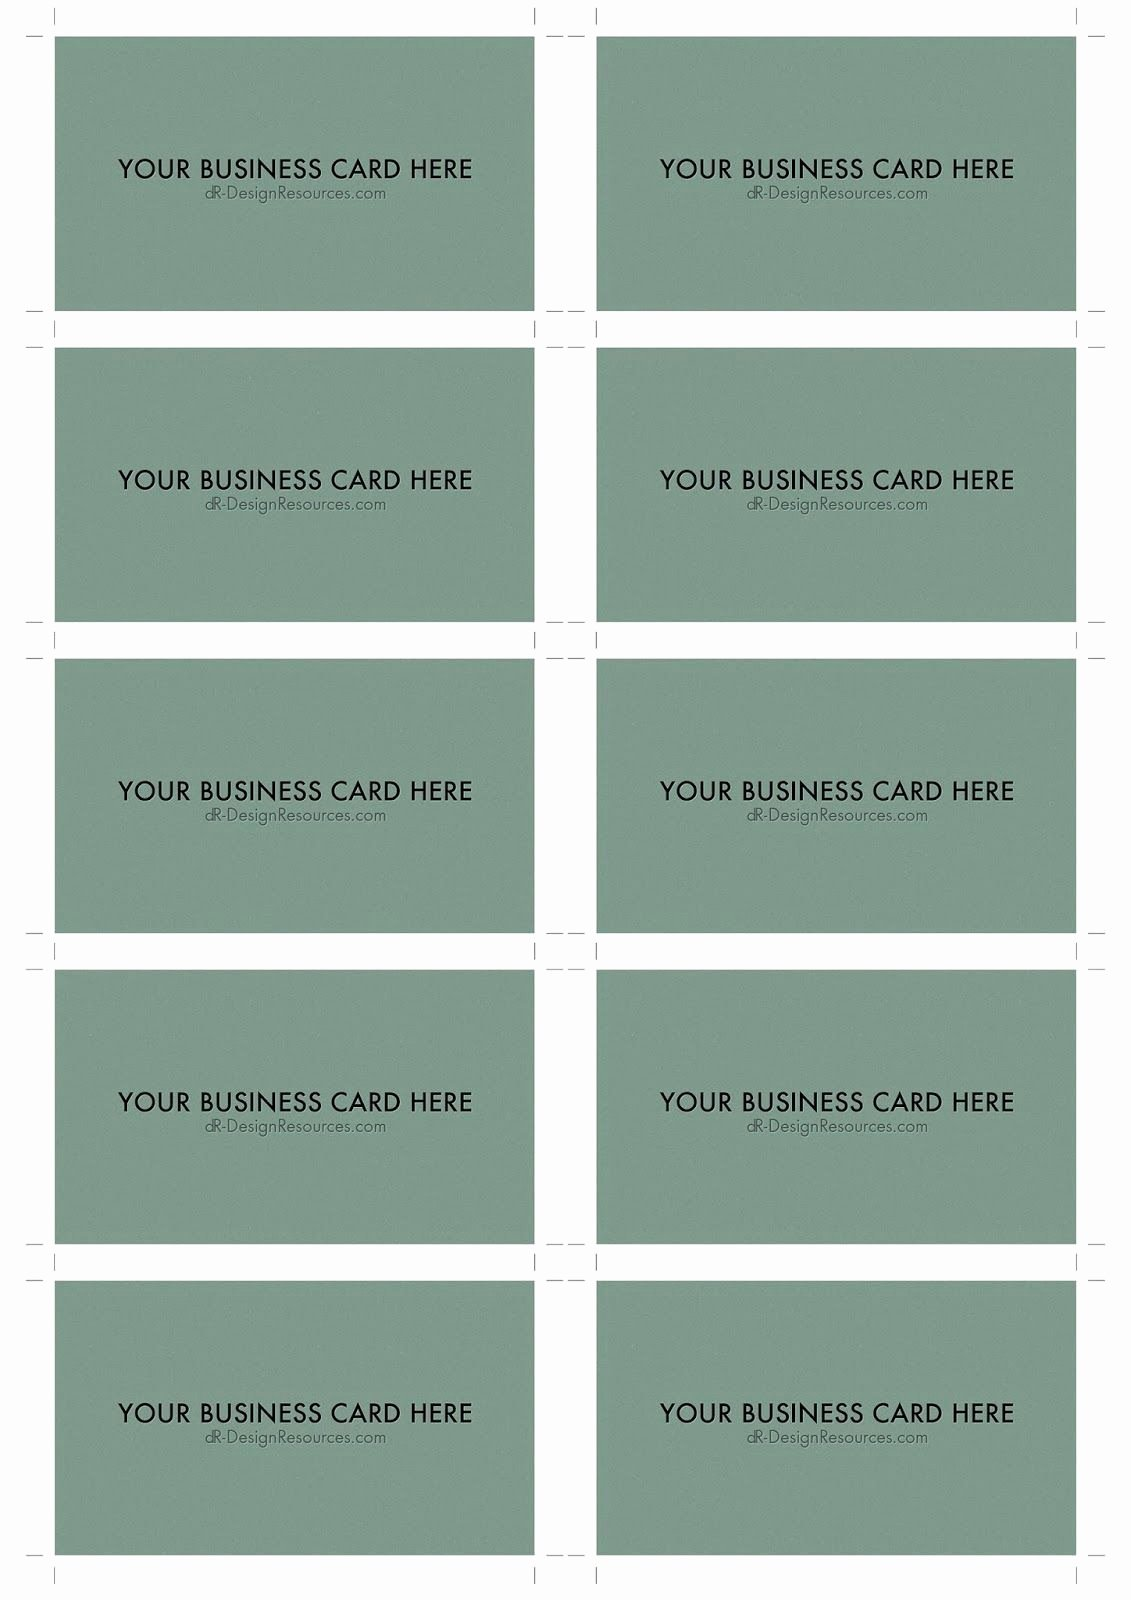 Business Card Sheet Template Unique 10 Business Card Template – Free Sample Business Card